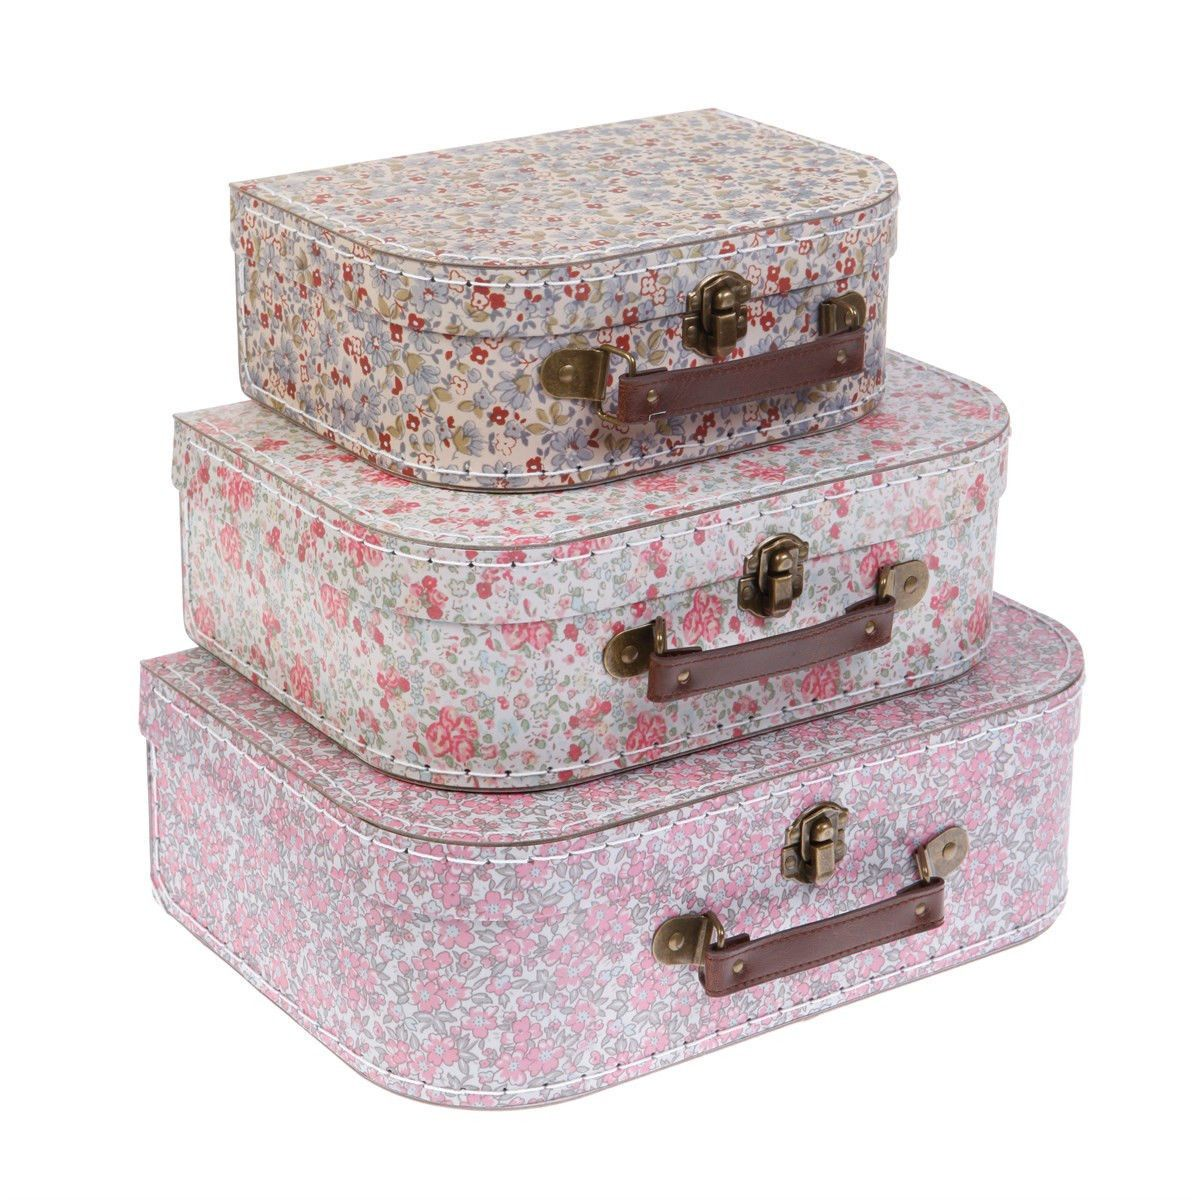 Set Of 3 Decorative Vintage Ditsy Floral Suitcases Storage